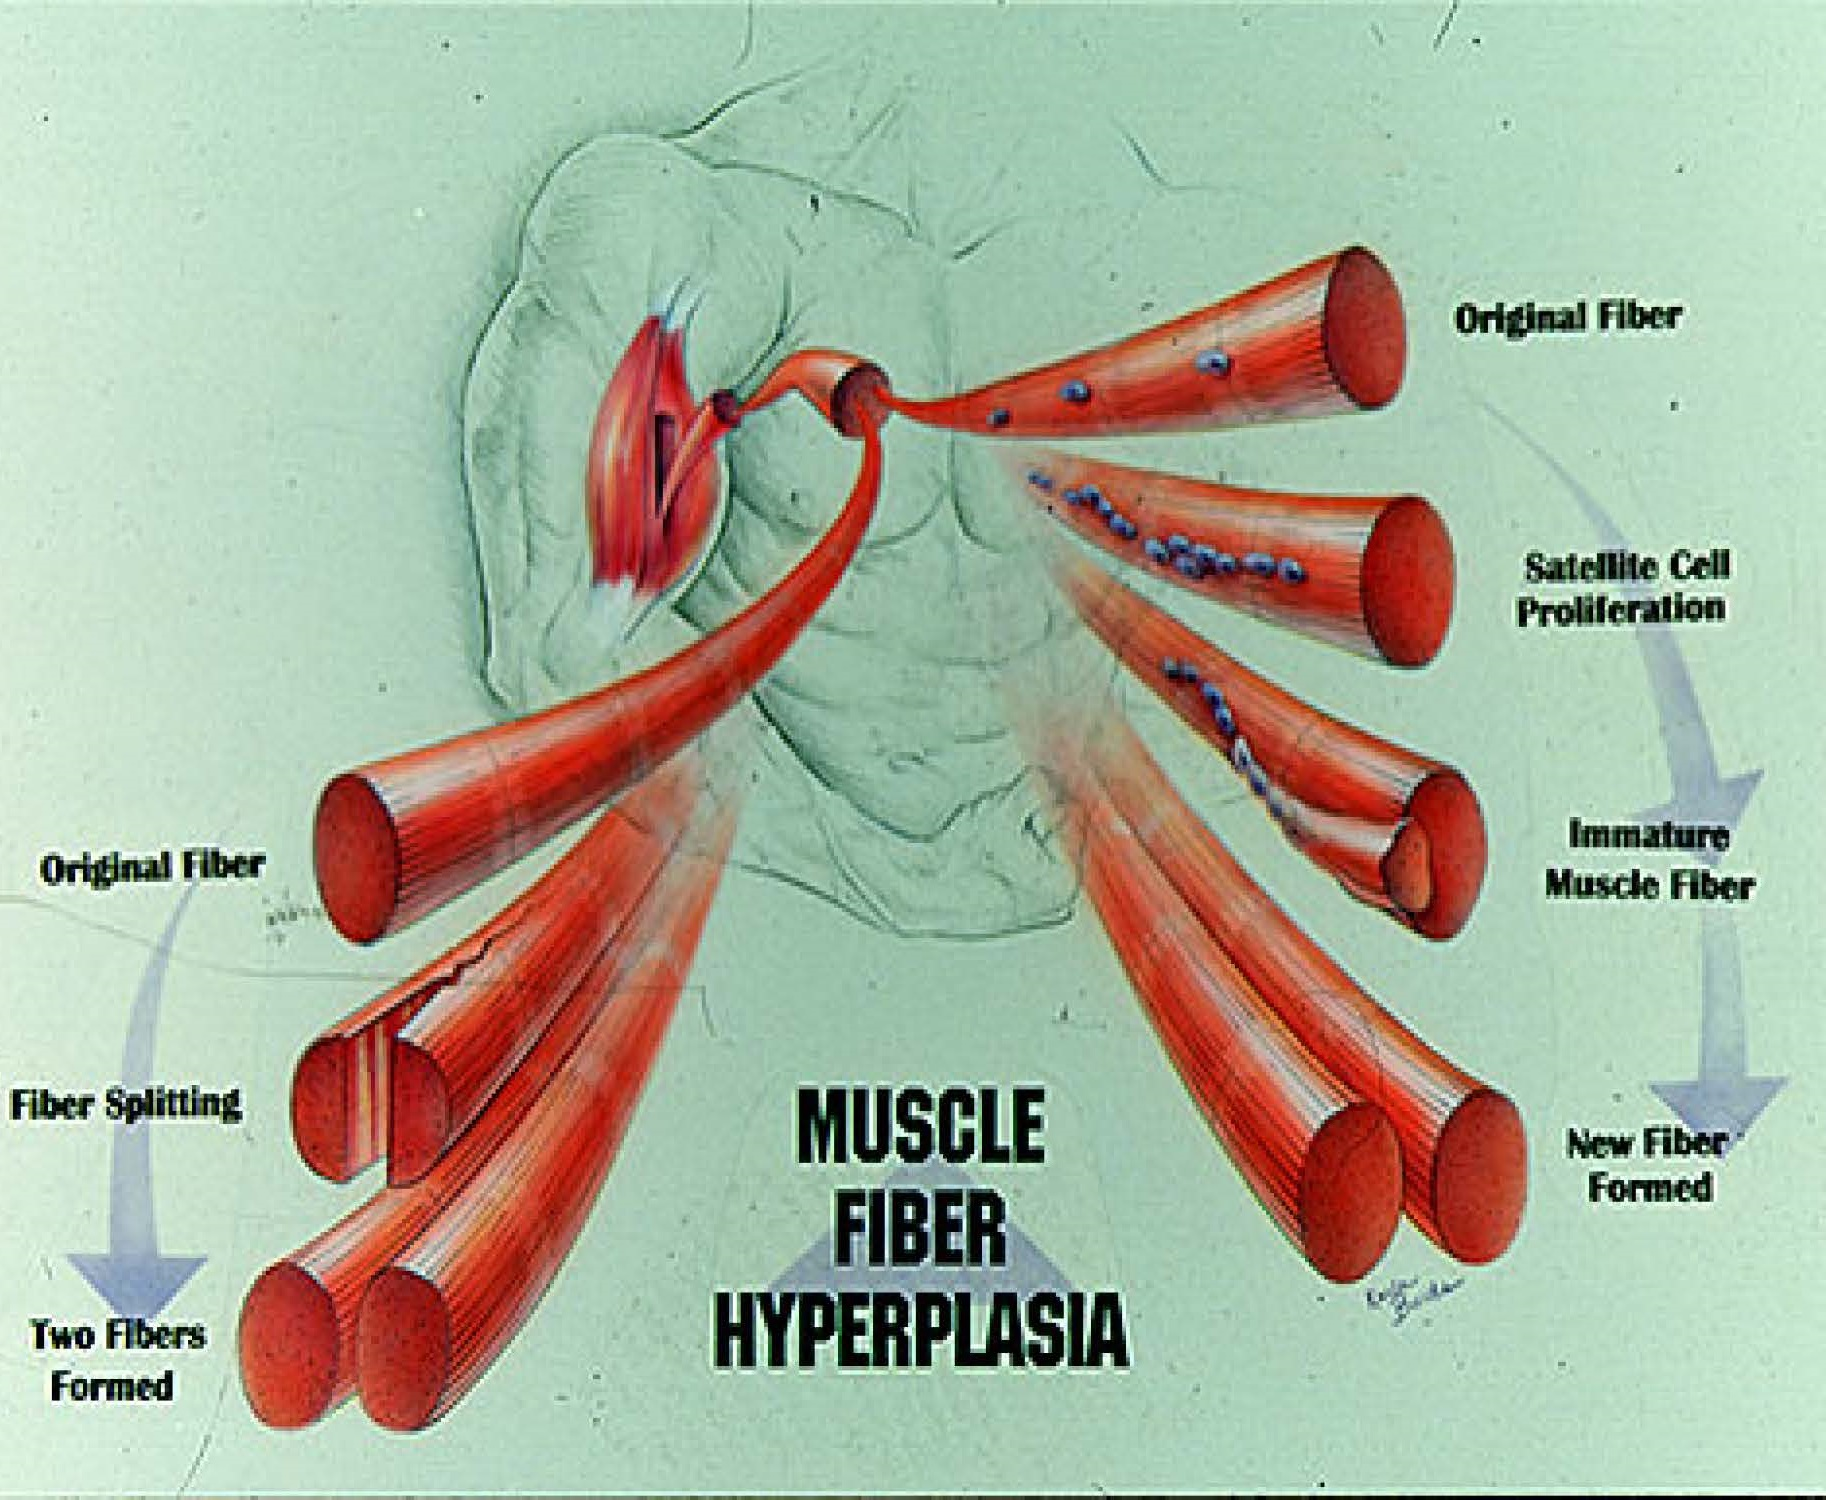 Skeletal Muscle Fiber Hyperplasia The Issn Scoop Chicken Wing Tendon Diagram Muscular System Body Systems Whew Pics 2 Page 4